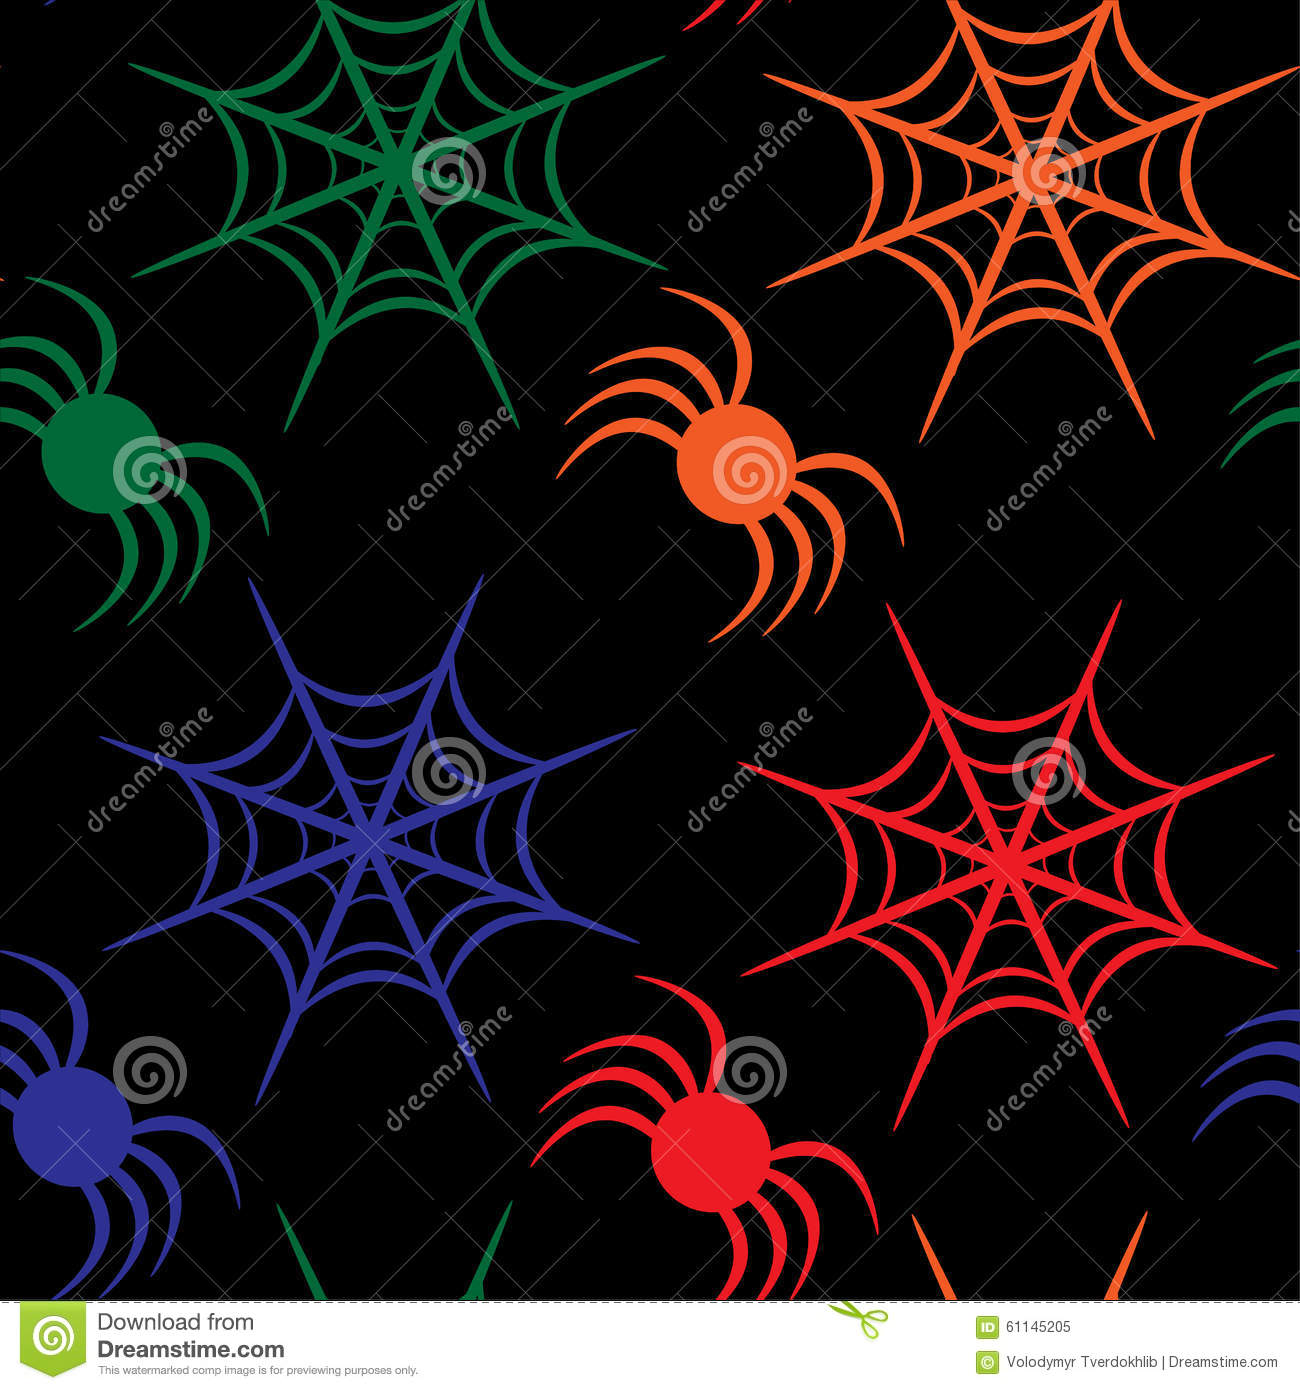 Pin spider web halloween holiday wallpapers hi on pinterest for Beautiful creative art